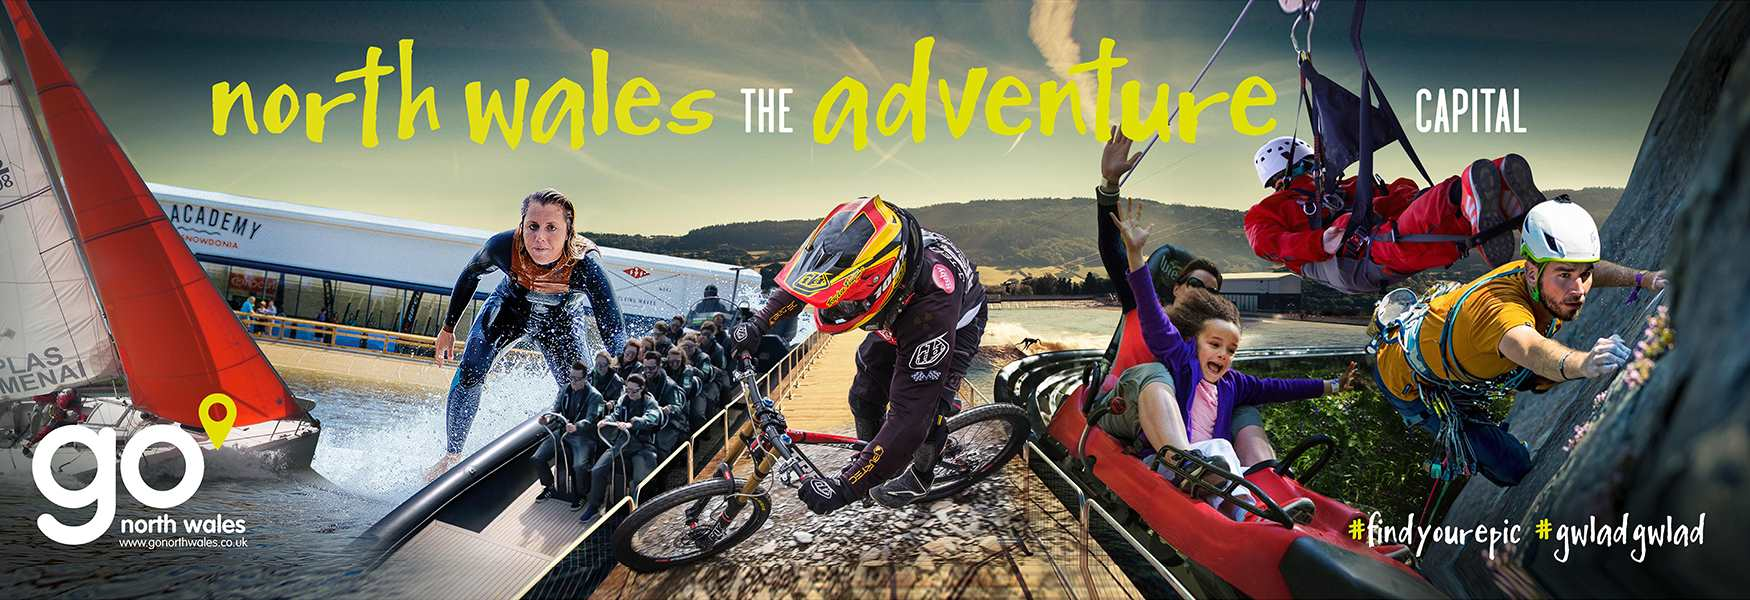 North wales the adventure capital of Europe